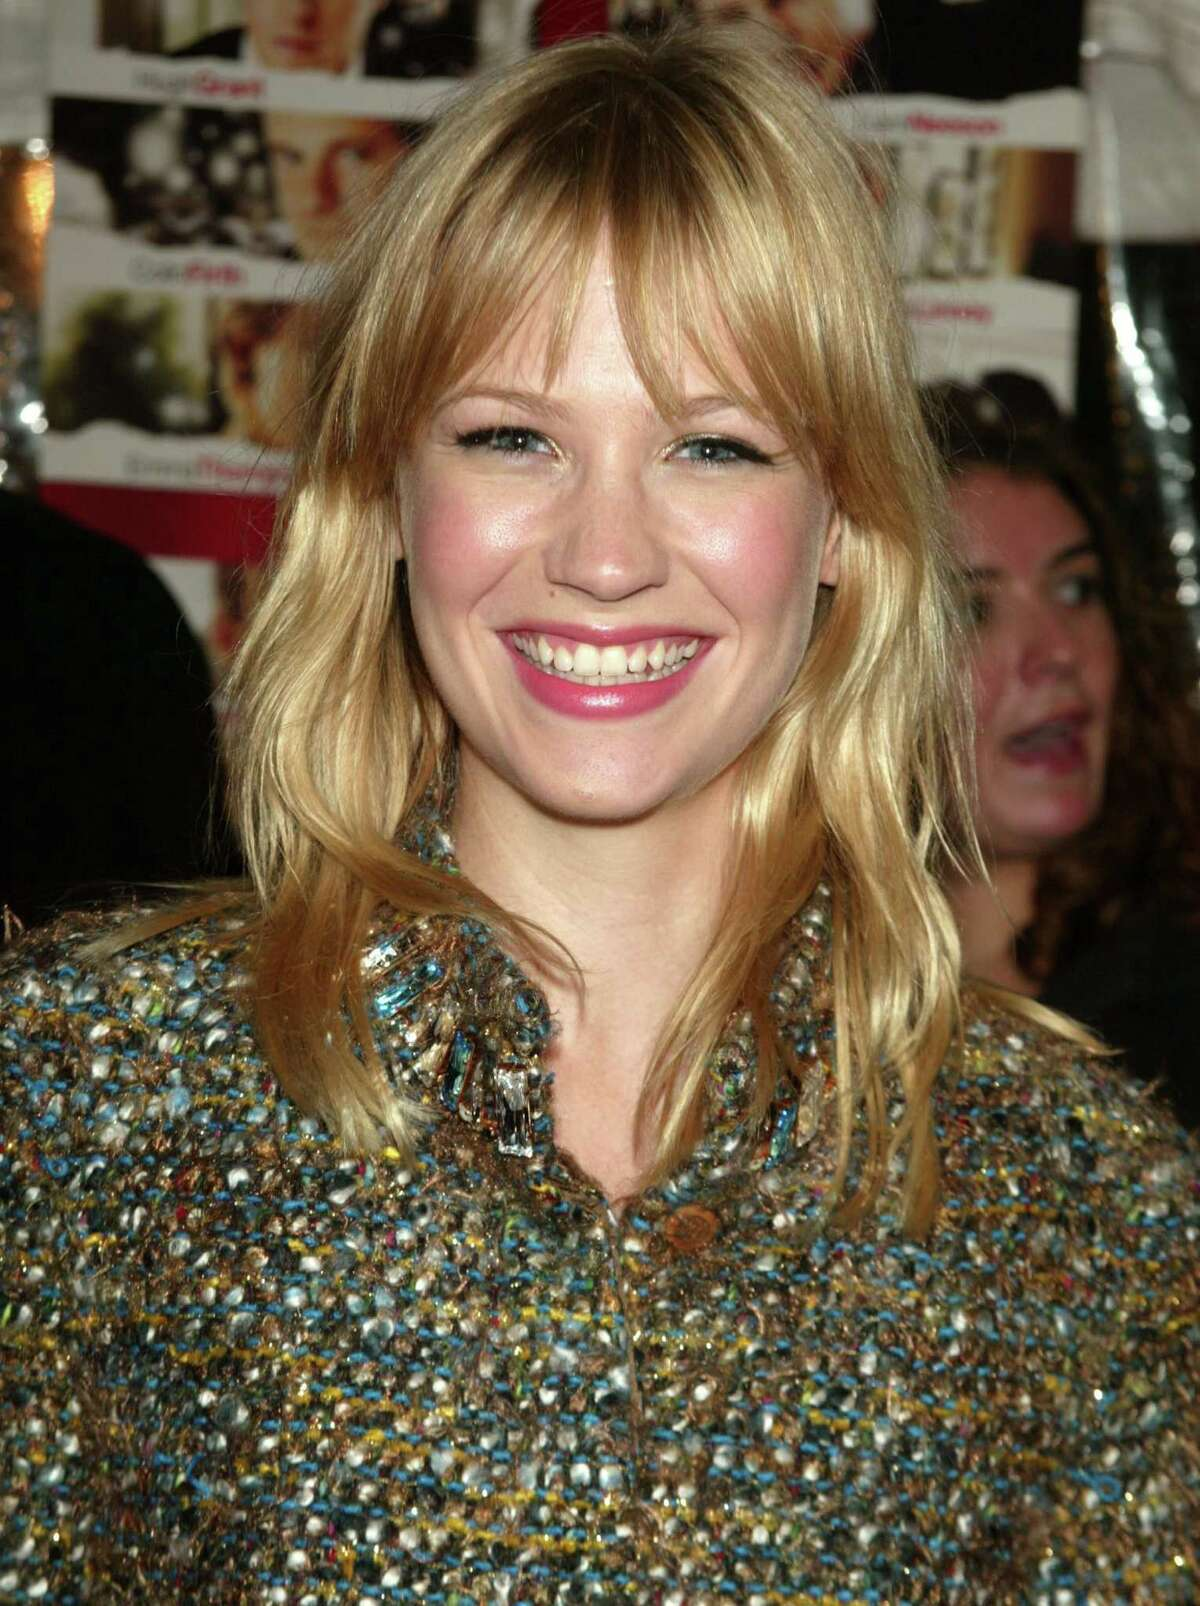 January Jones says she had the placenta dried and placed in pills.